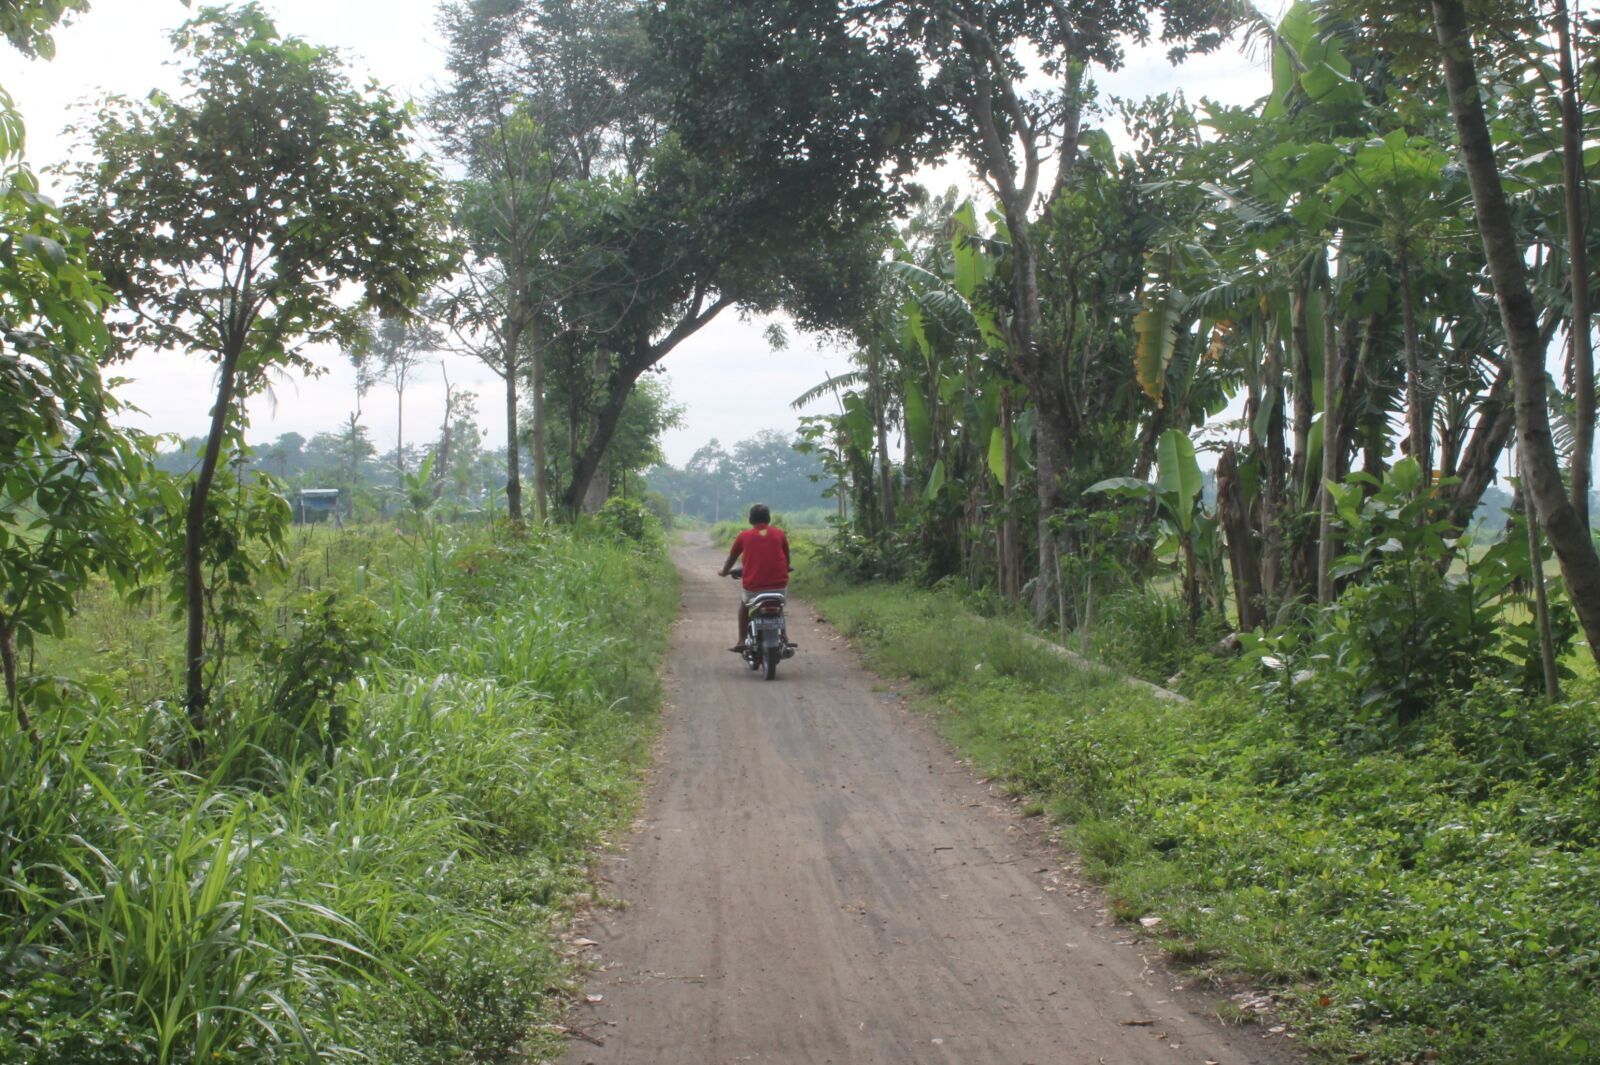 """Canon EOS 1100D (EOS Rebel T3 / EOS Kiss X50) sample photo. """"Village, motorcycle, travel"""" photography"""